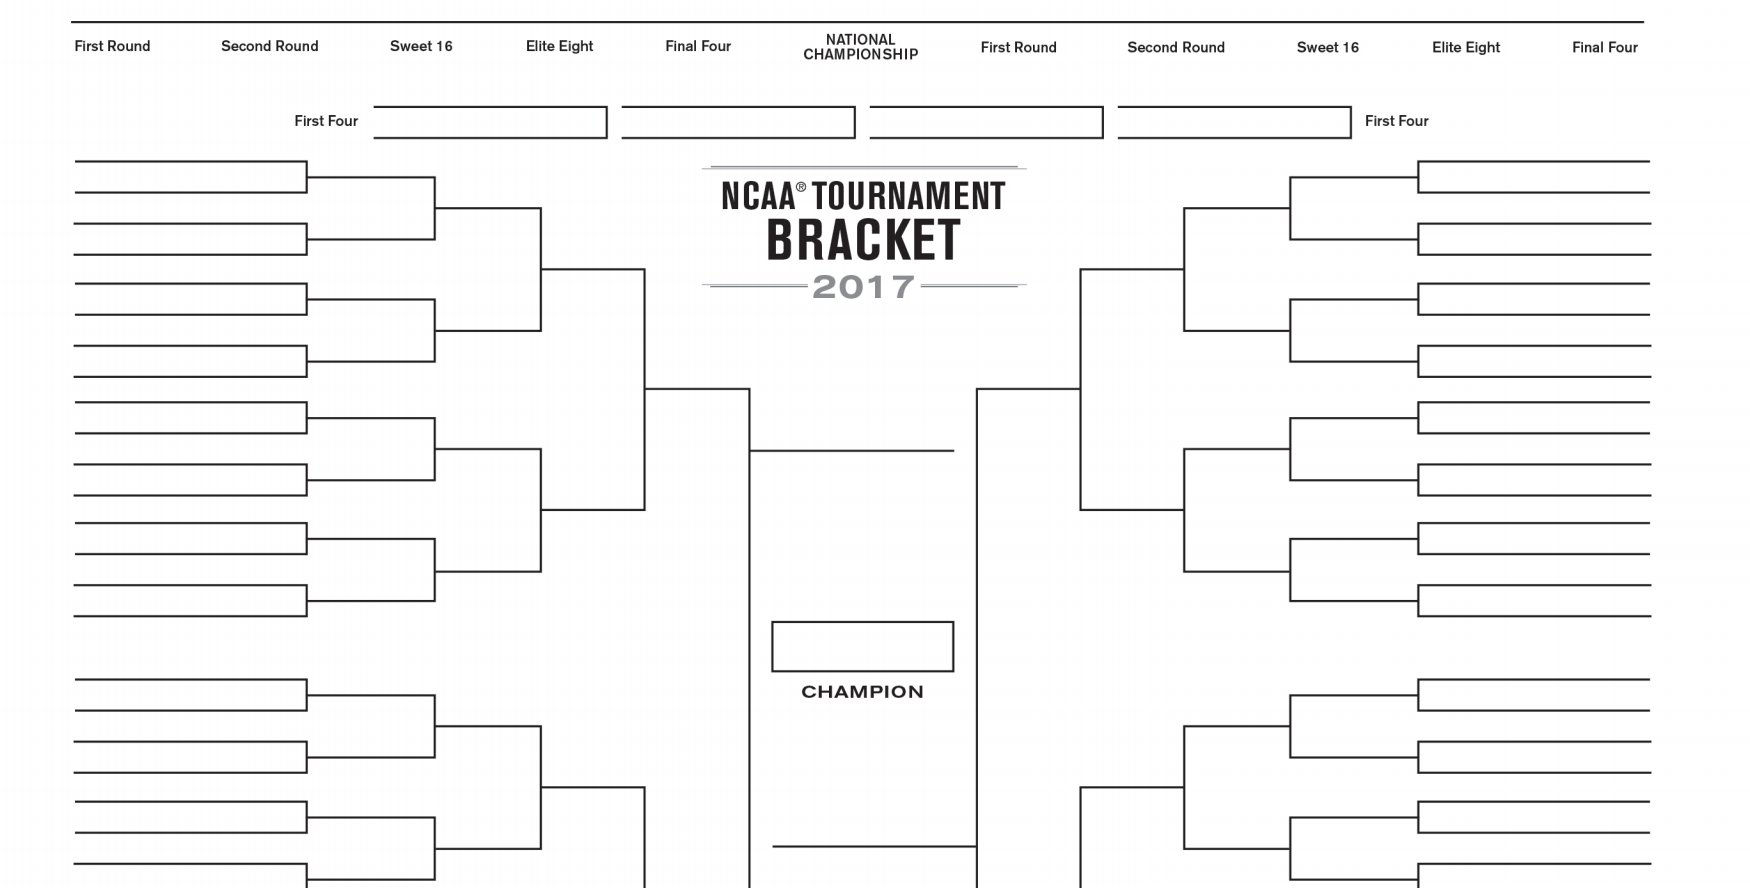 Need a blank bracket to fill out during the #SelectionSunday show?  Got you: https://t.co/WjUVte6kjg https://t.co/eFqLgmu2Ul